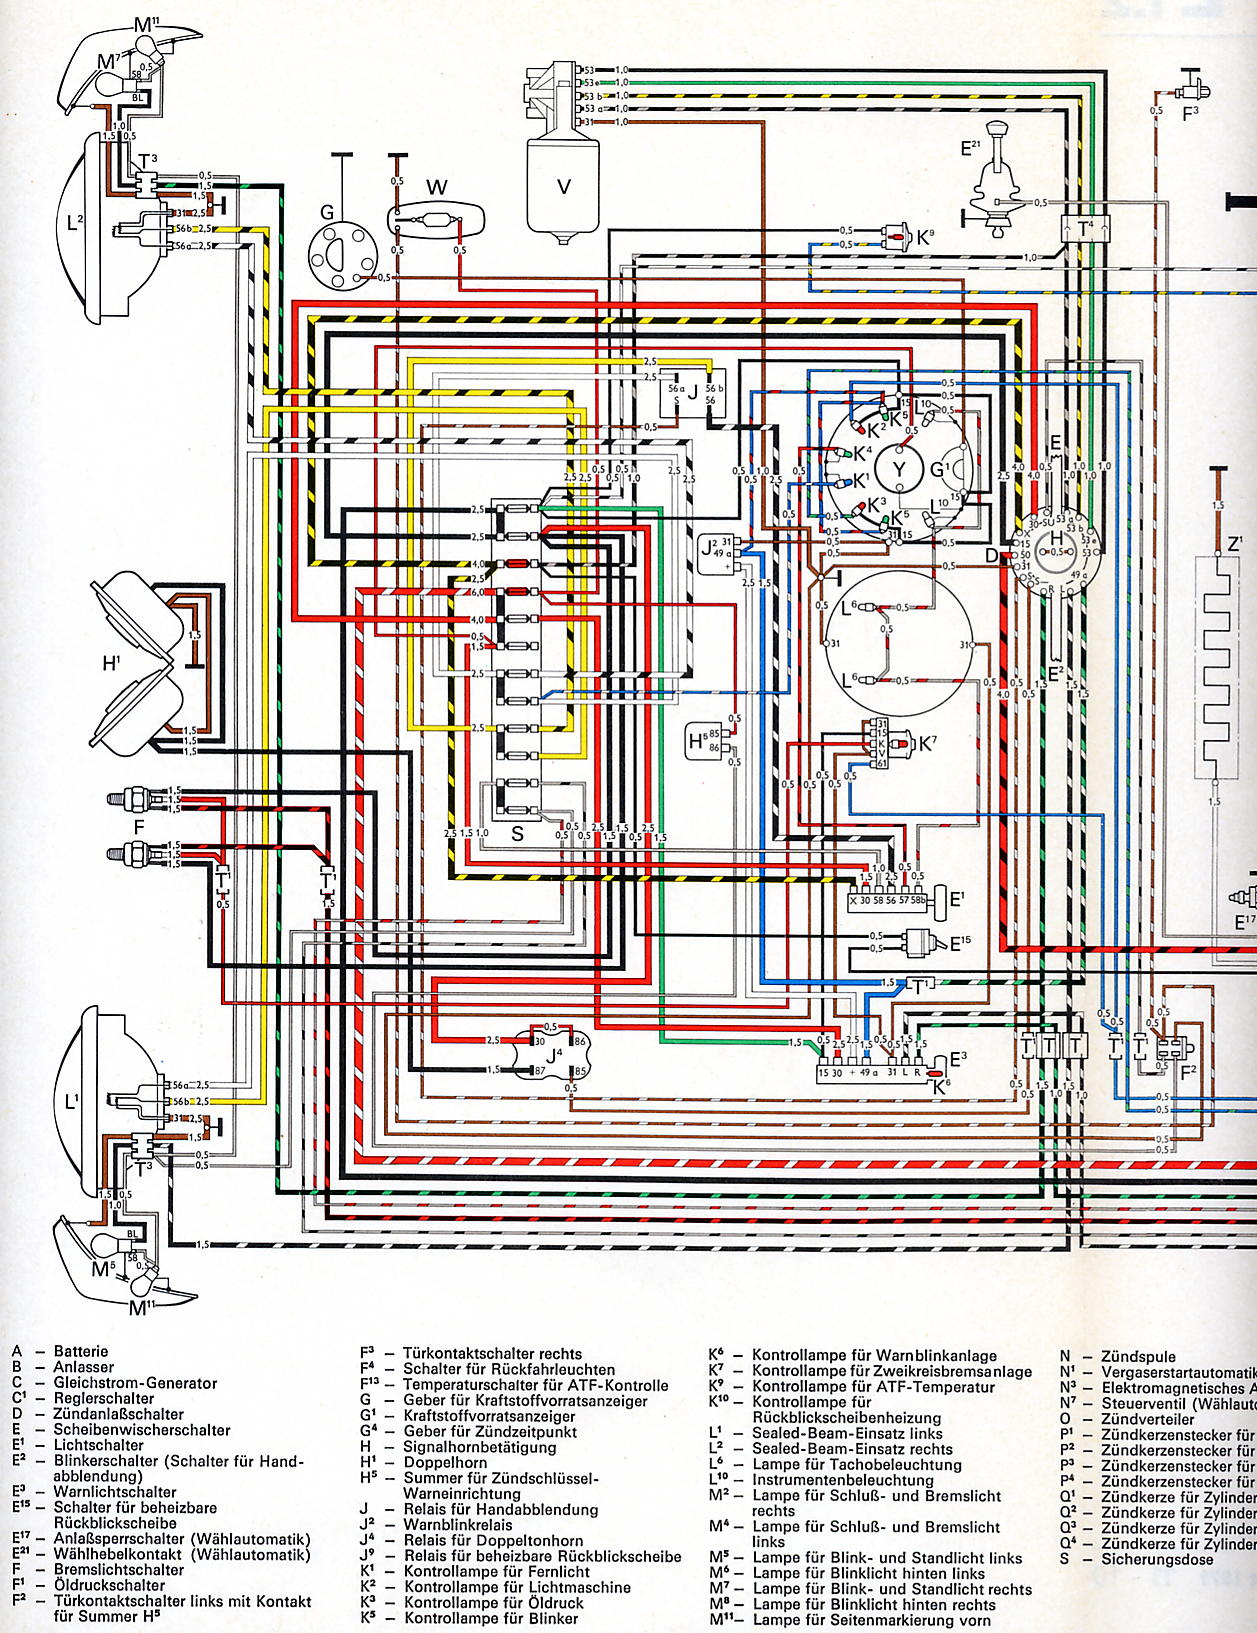 Karmann_Ghia_USA_from_August_1971 1 audi a2 wiring diagram 1998 expedition stereo wiring diagram audi a3 wiring diagram pdf at edmiracle.co